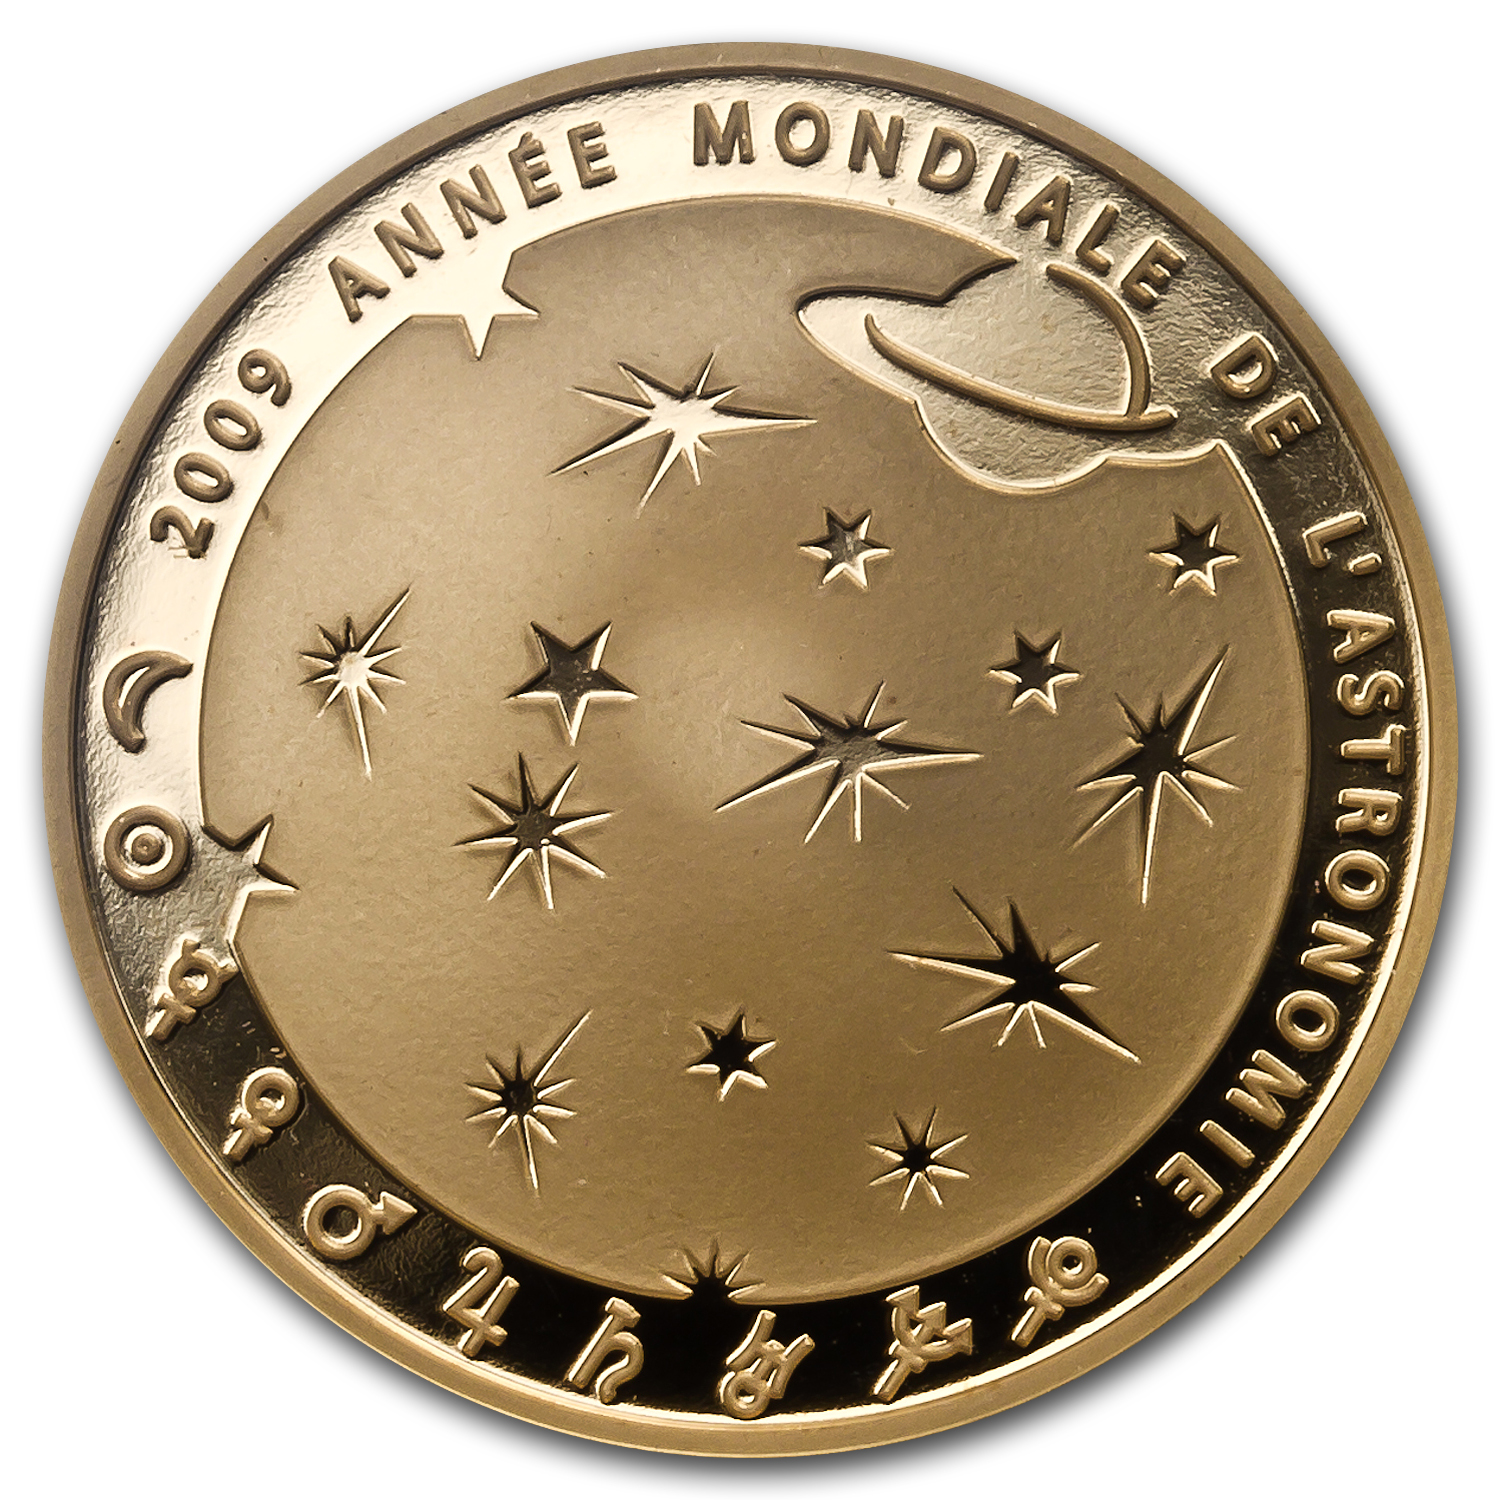 2009 1/4 oz Gold Proof International Year of Astronomy